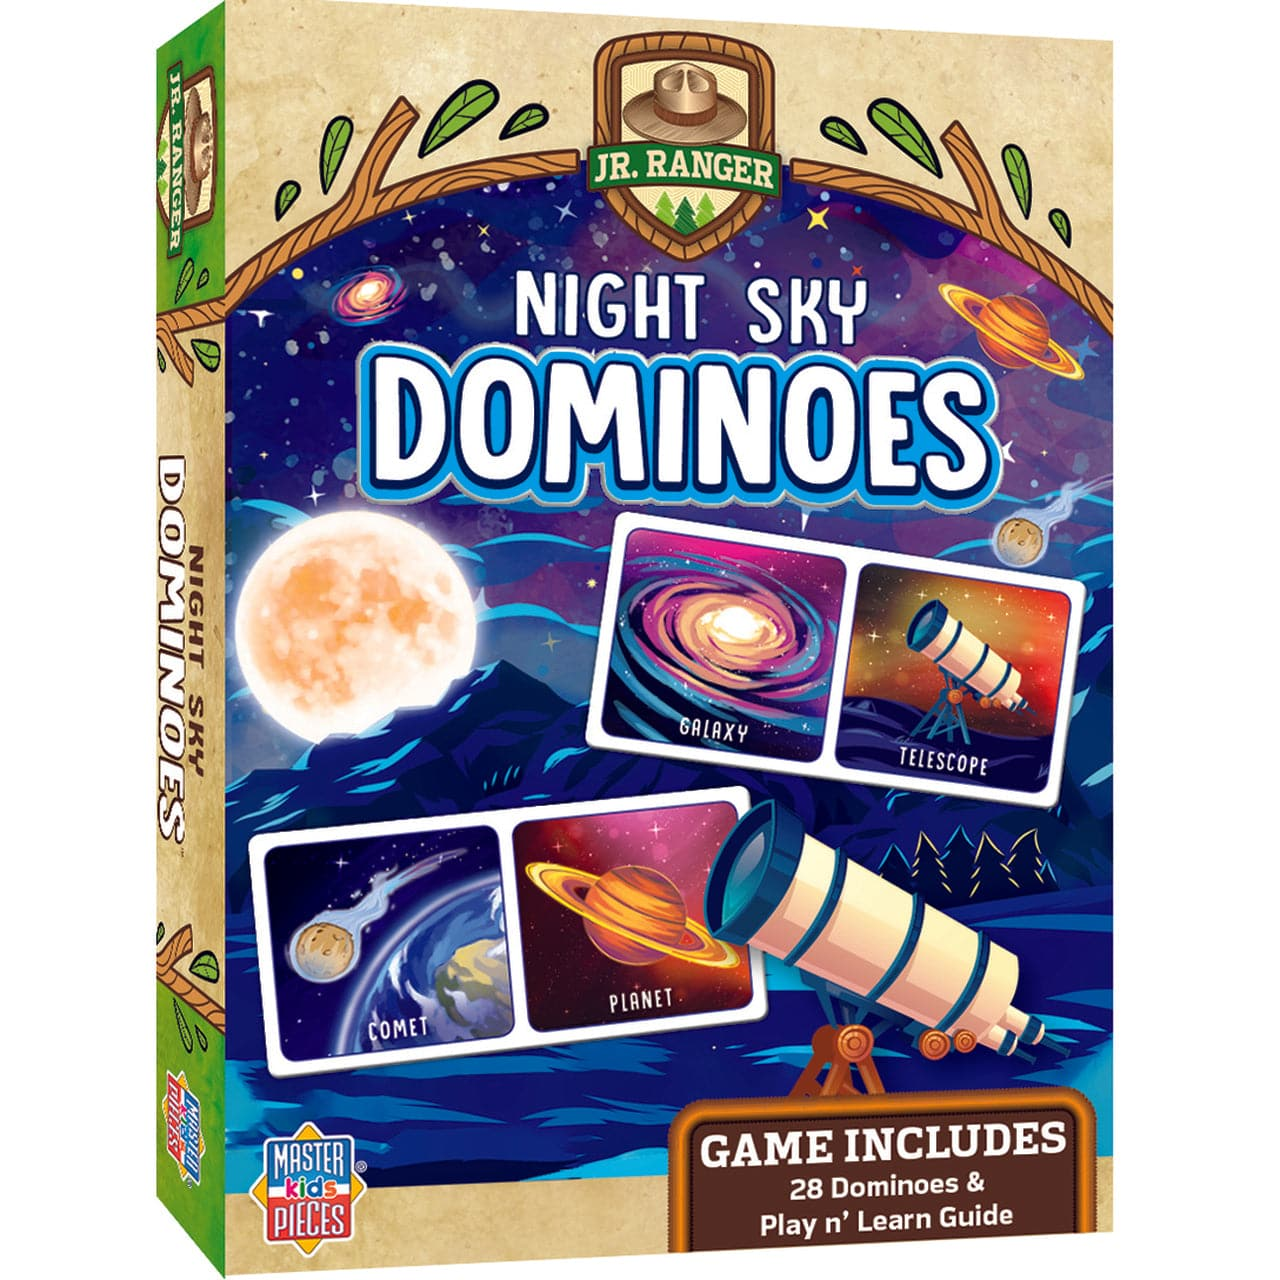 Night Sky Dominoes